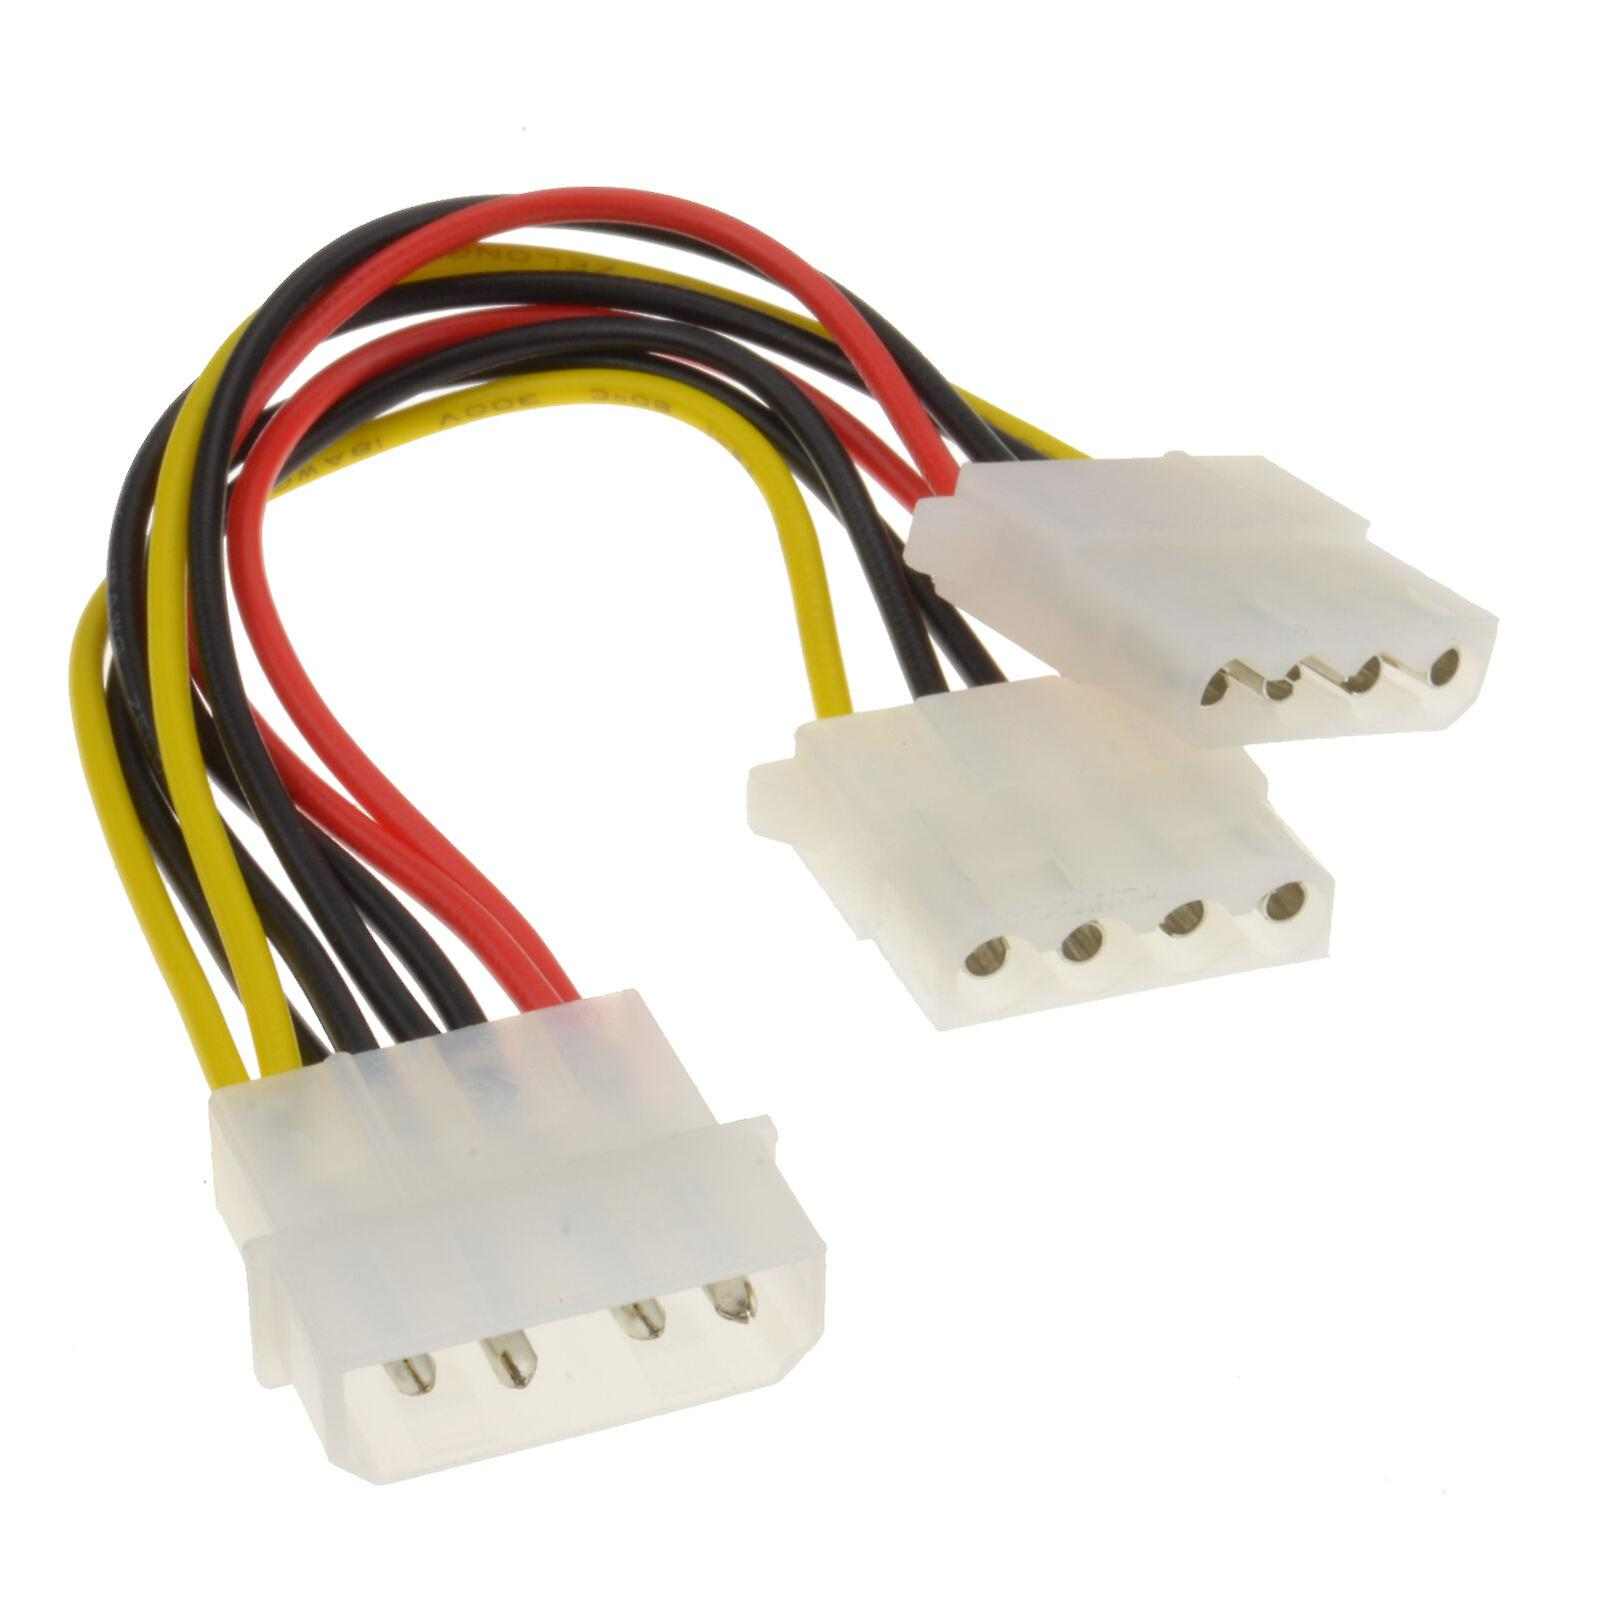 2 Way 4 pin PSU Power Splitter Cable LP4 Molex 1 to 2 CabledUp